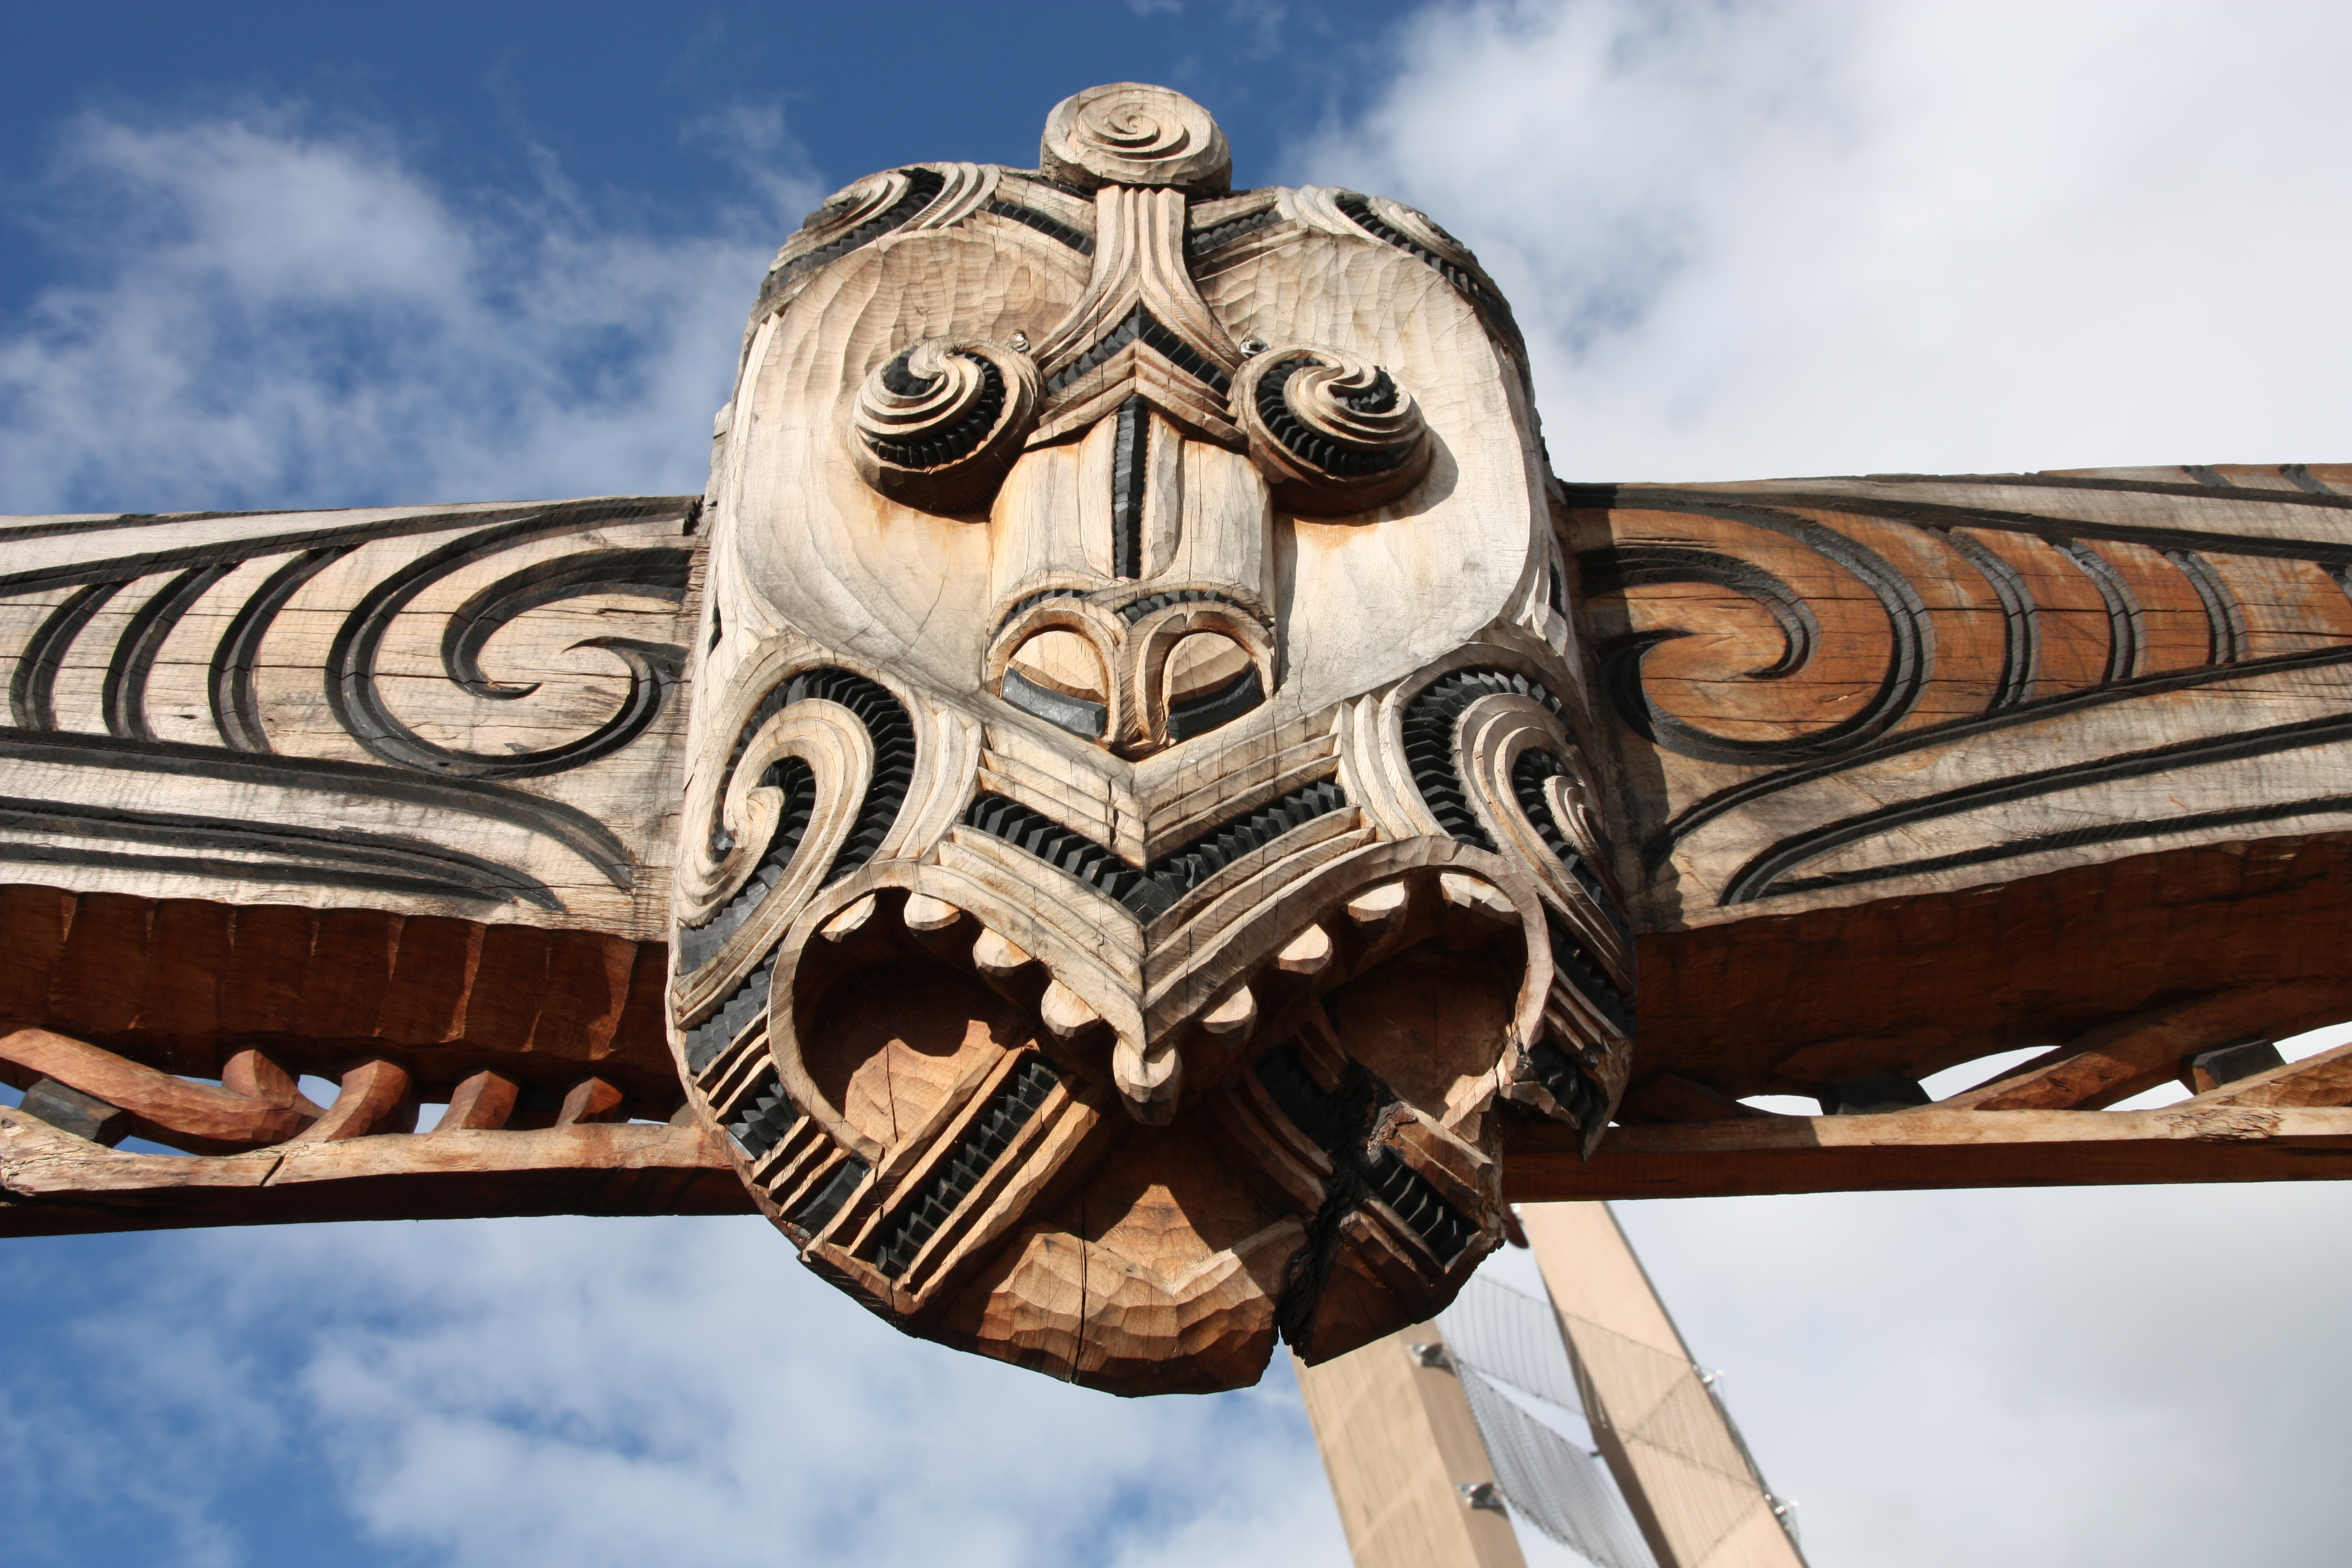 Maori art and culture thrives in New Zealand